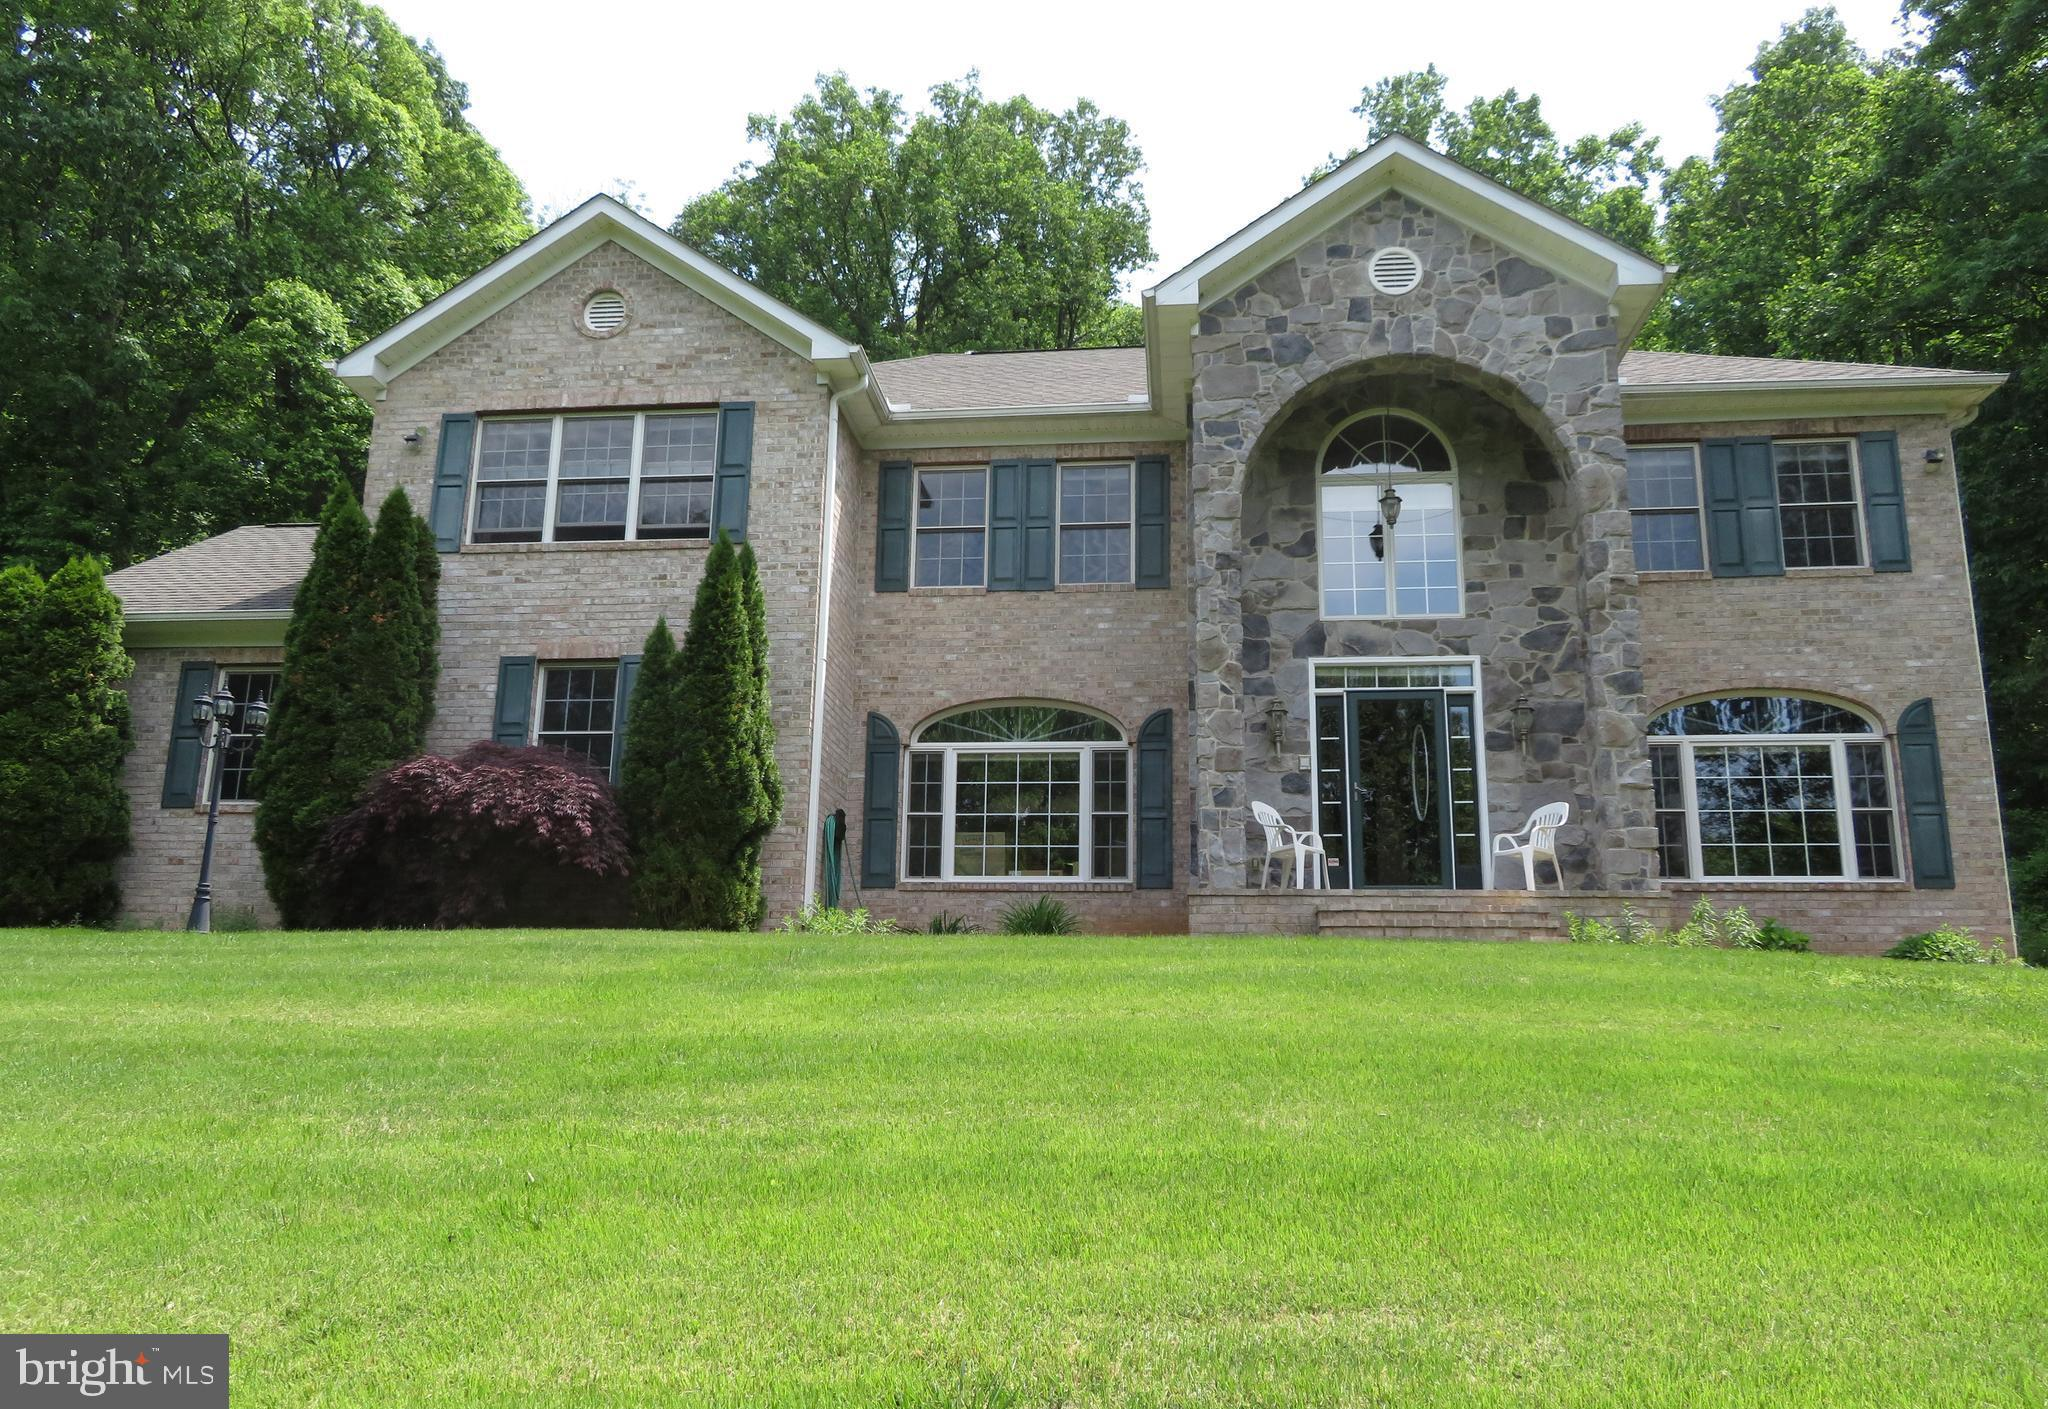 3780 POINT OF ROCKS ROAD, JEFFERSON, MD 21755